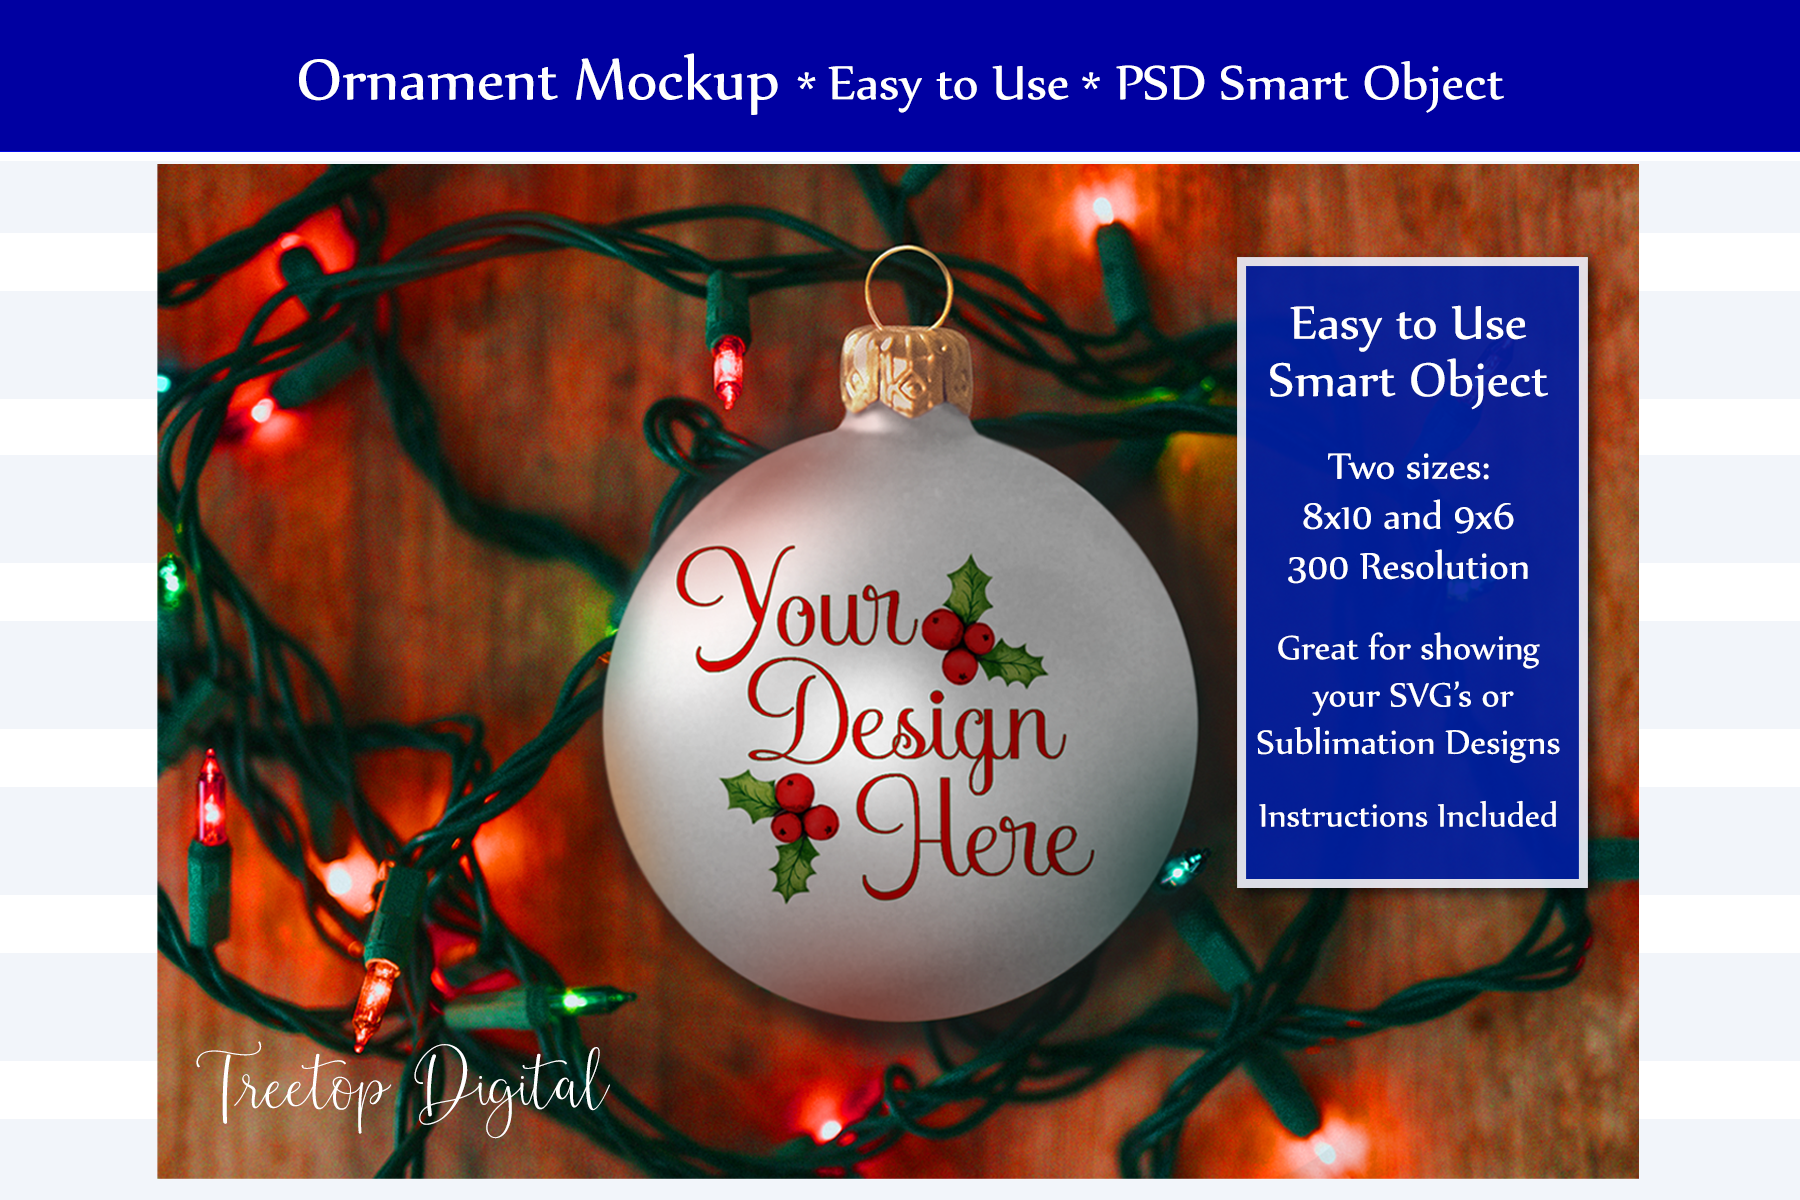 Christmas Ball Ornament Mockup, Bauble Mock-Up, PSD example image 1